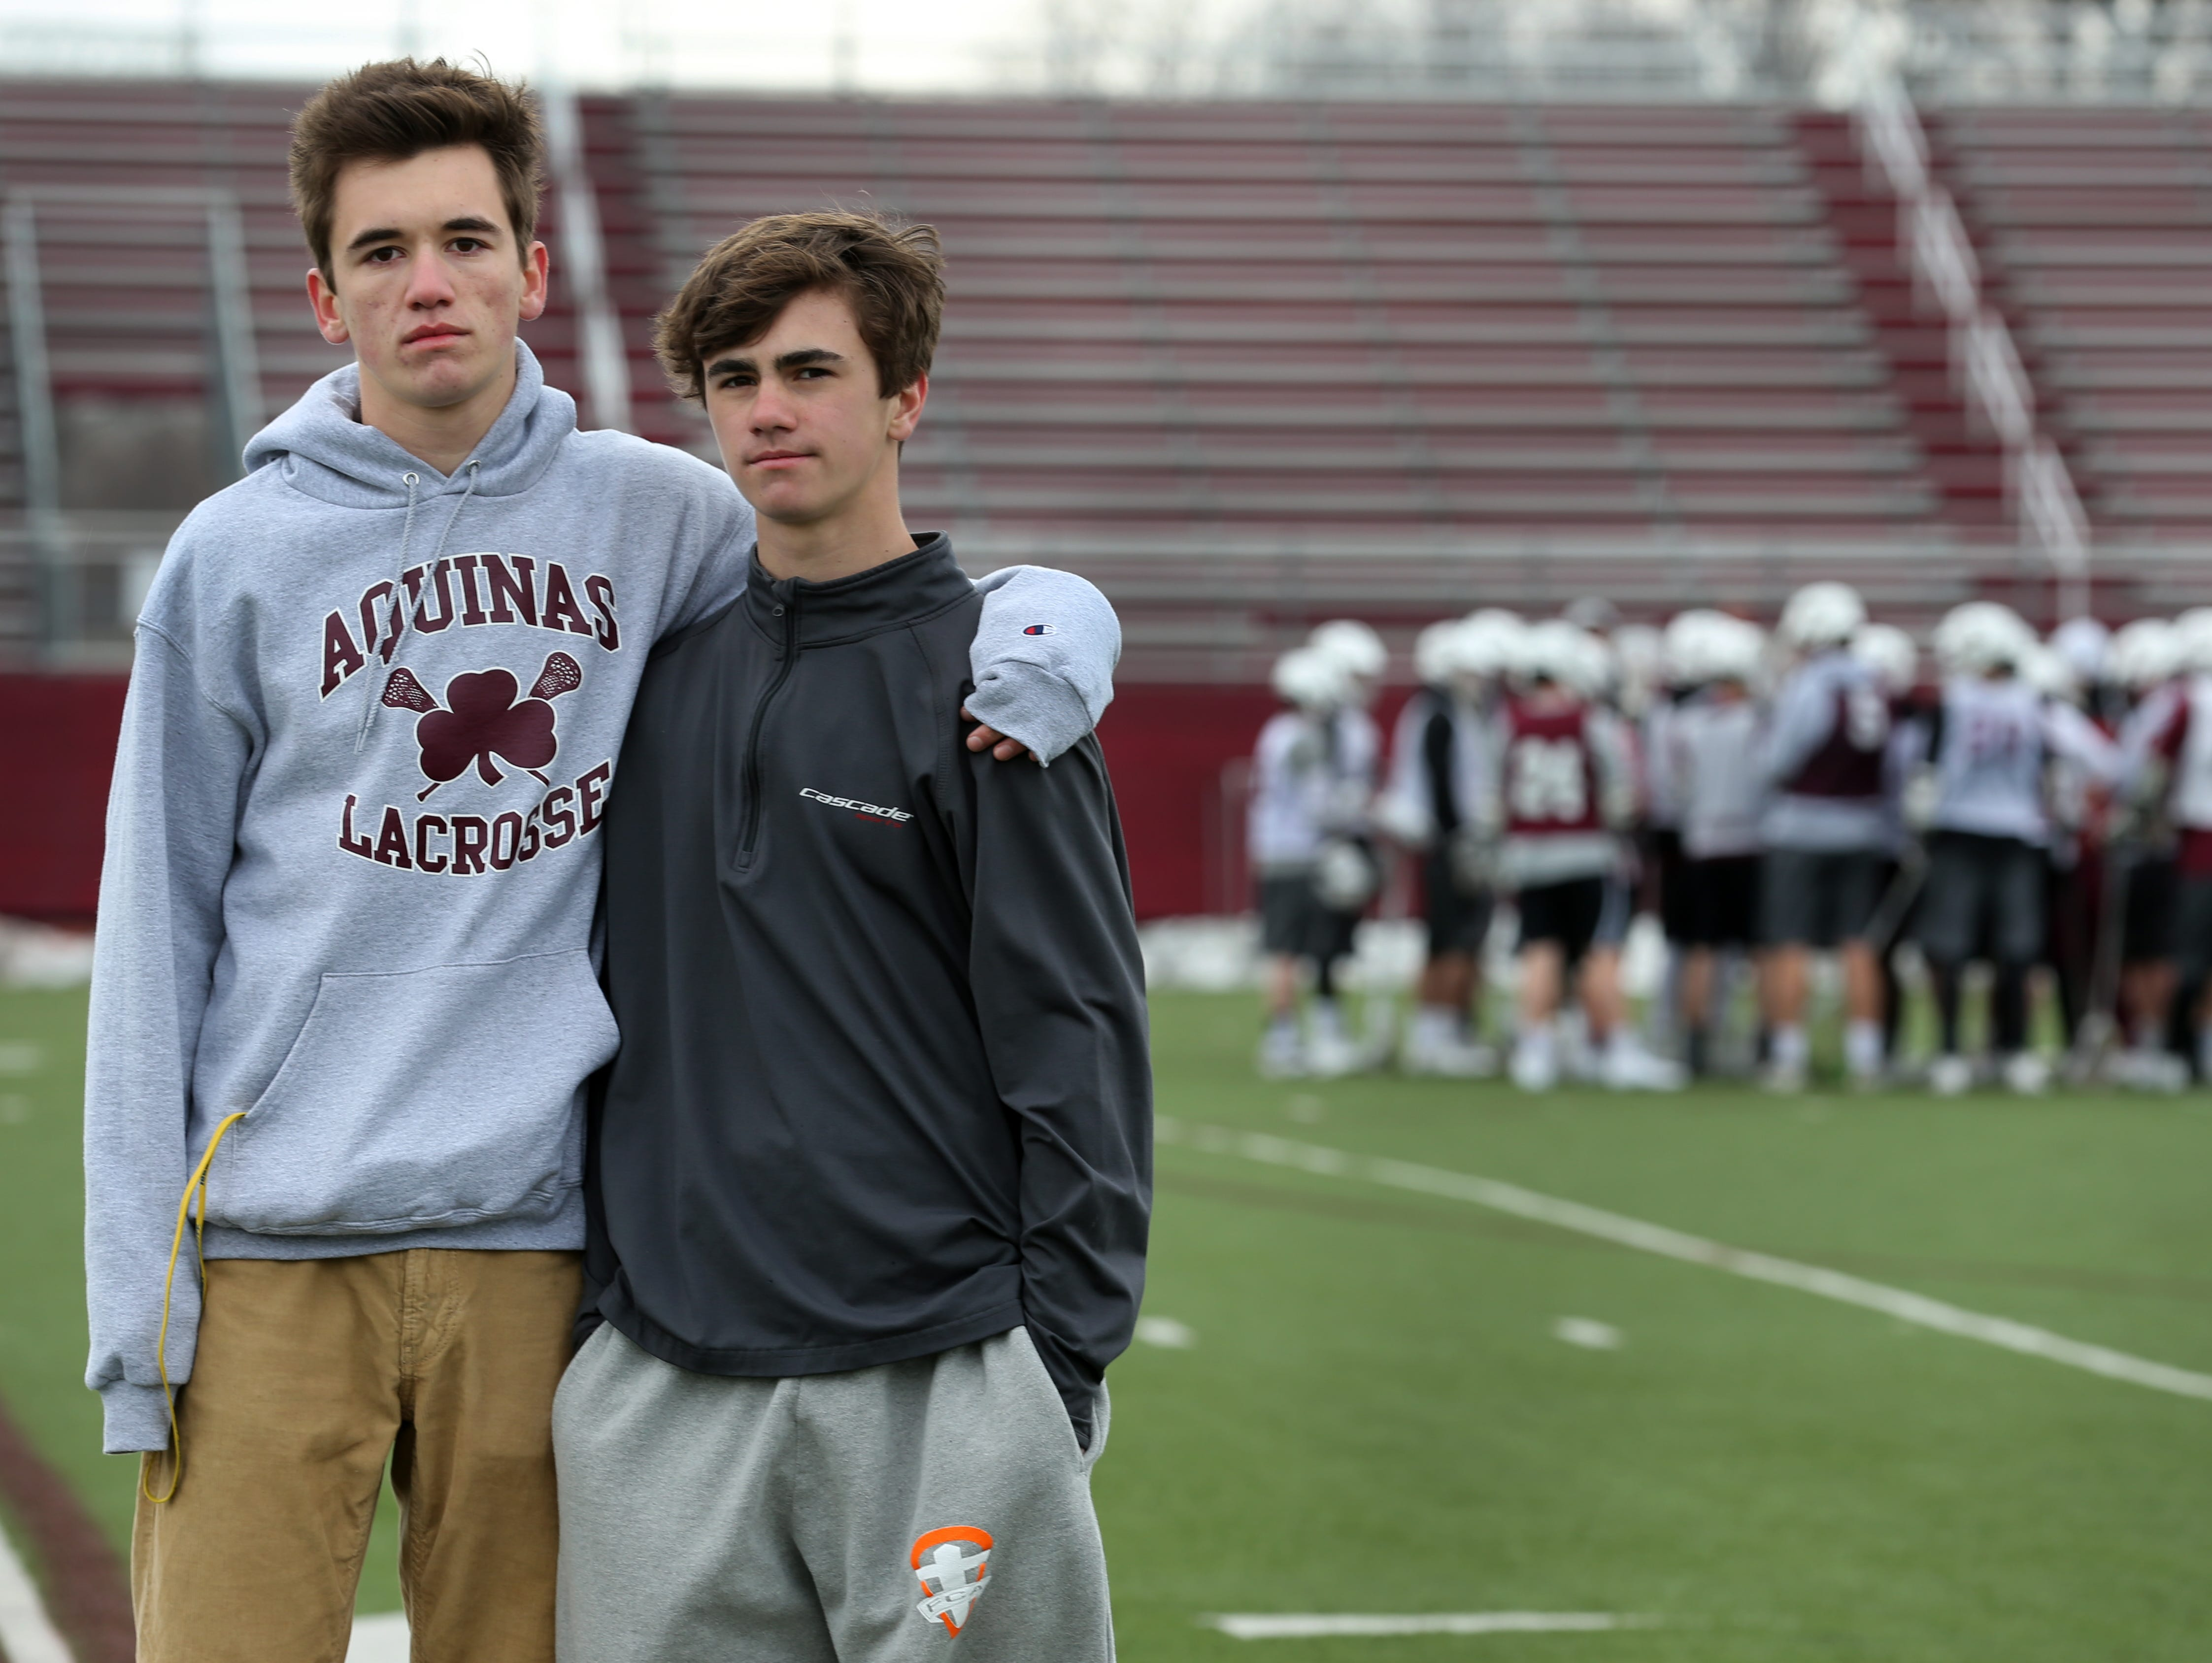 Bryce and Evan Kelly are illegal players, deemed ineligible to compete with their schools lacrosse team for a year because they failed to prove that they were harassed and bullied enough to Section V.